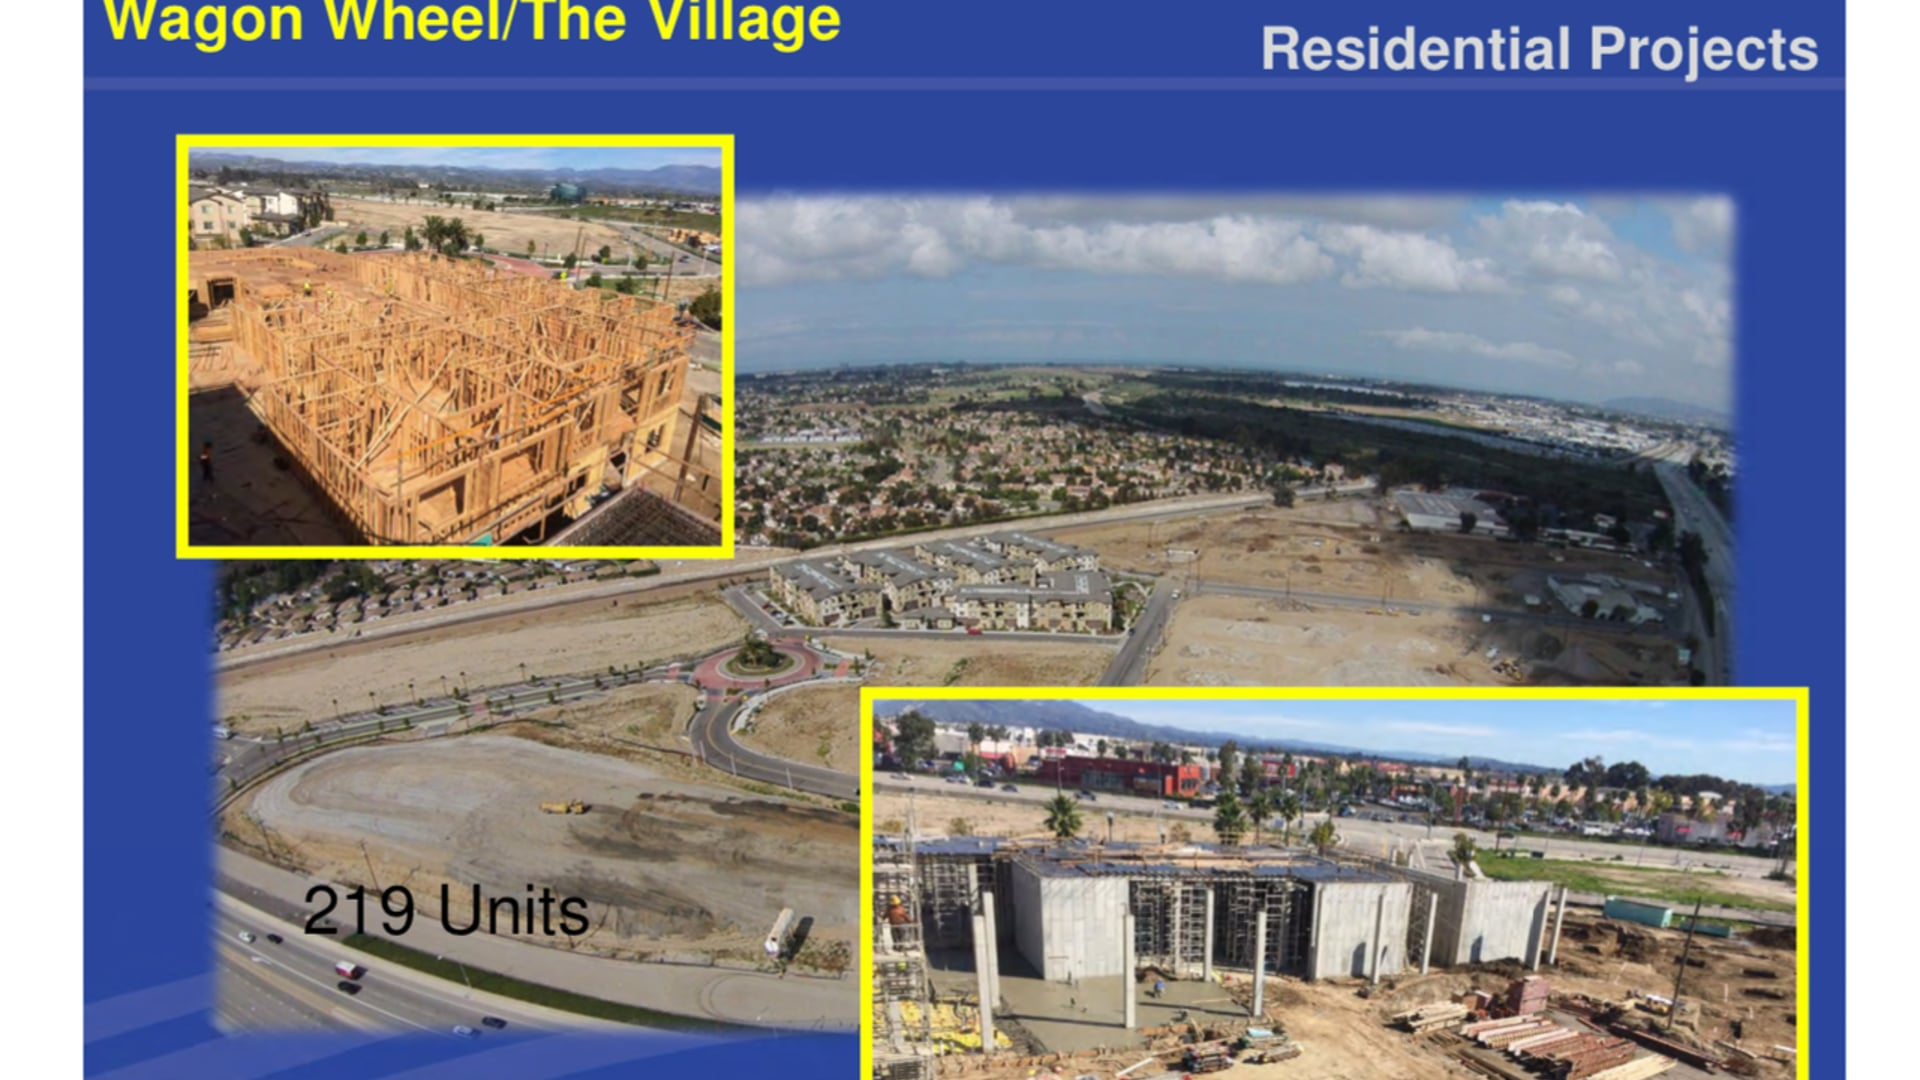 8-18 DEVELOPMENT UPDATE-  Oxnard Residential projects, The Village, Park Place at Wagon Wheel